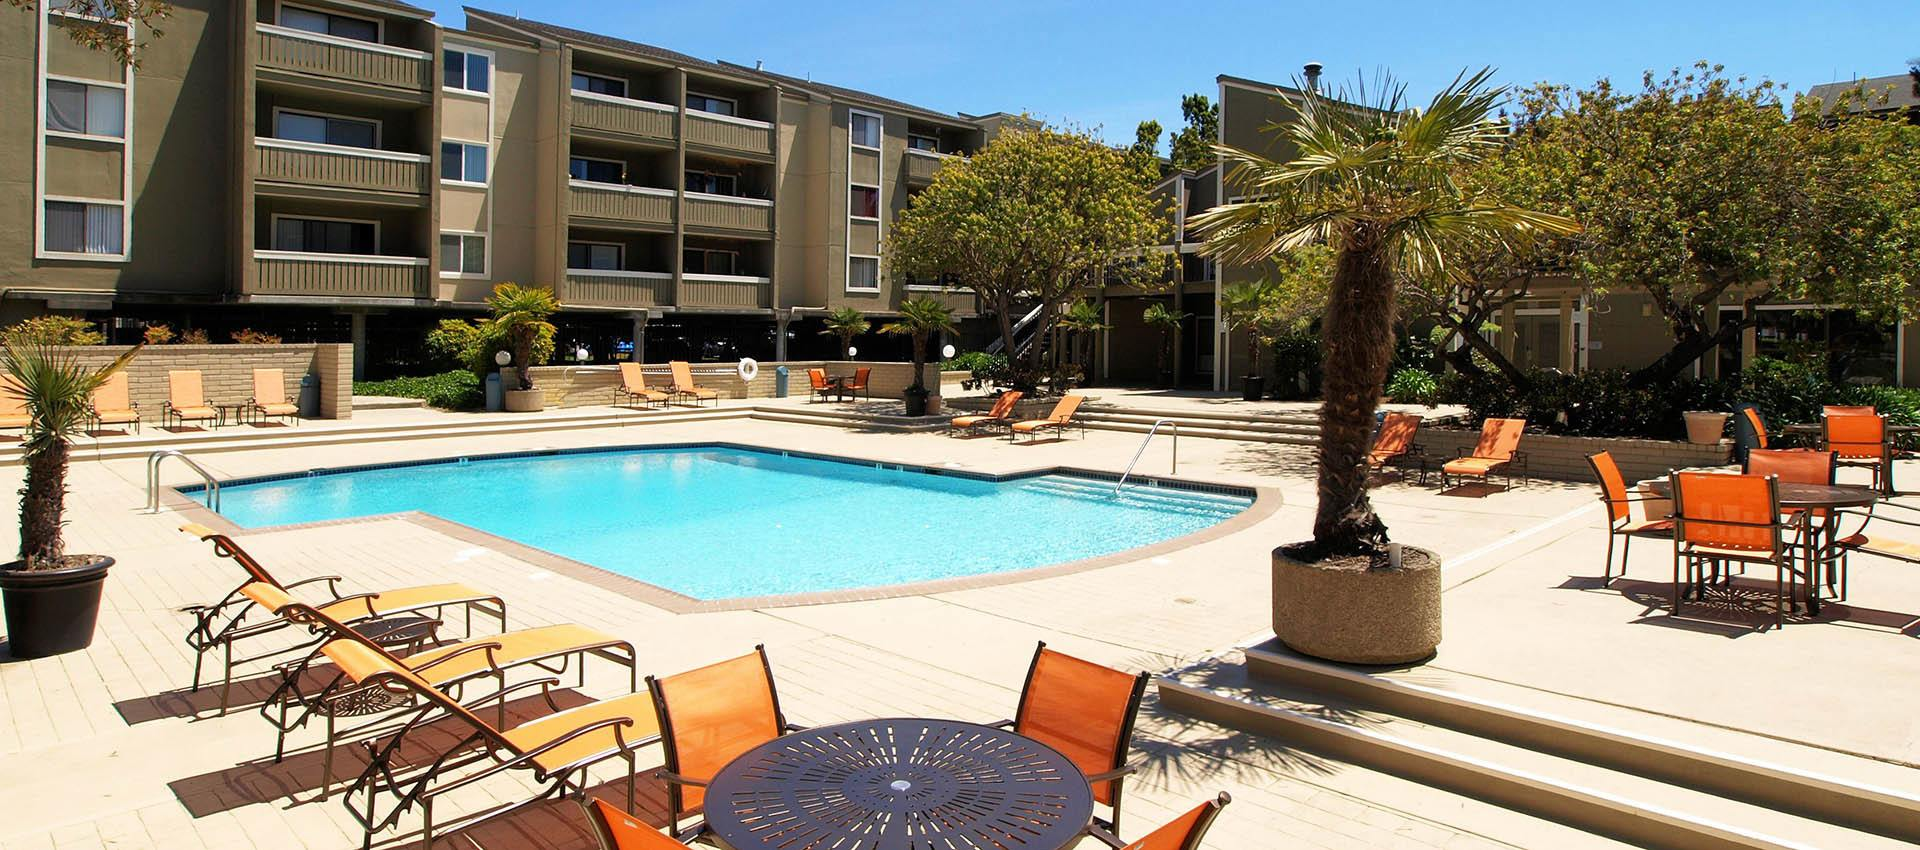 Amenities at Ballena Village Apartment Homes in Alameda